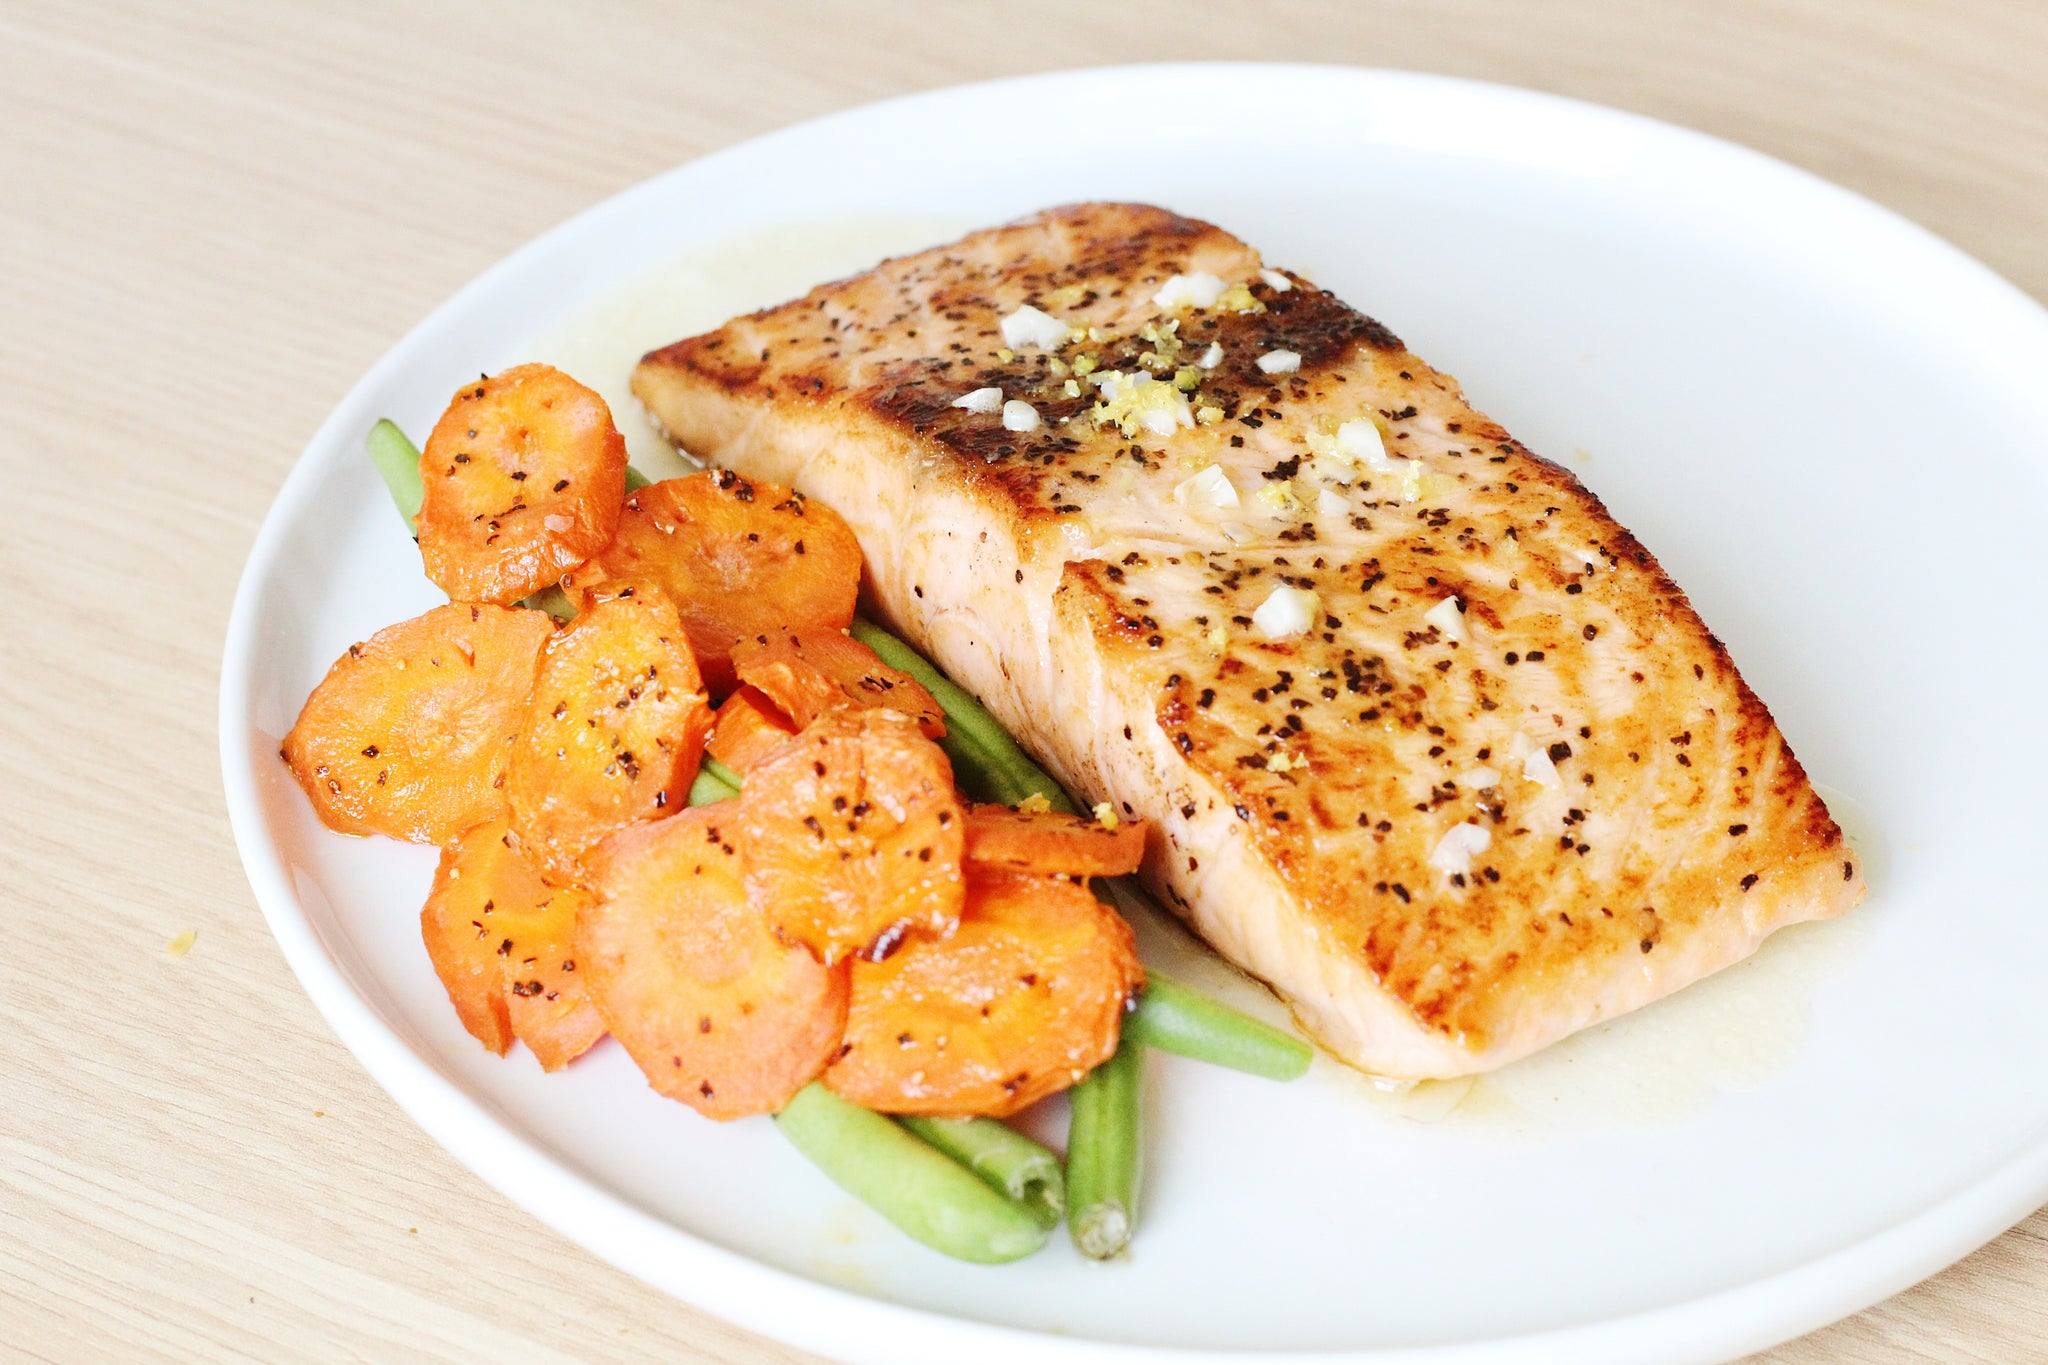 Seared Salmon with Lemon Garlic Butter